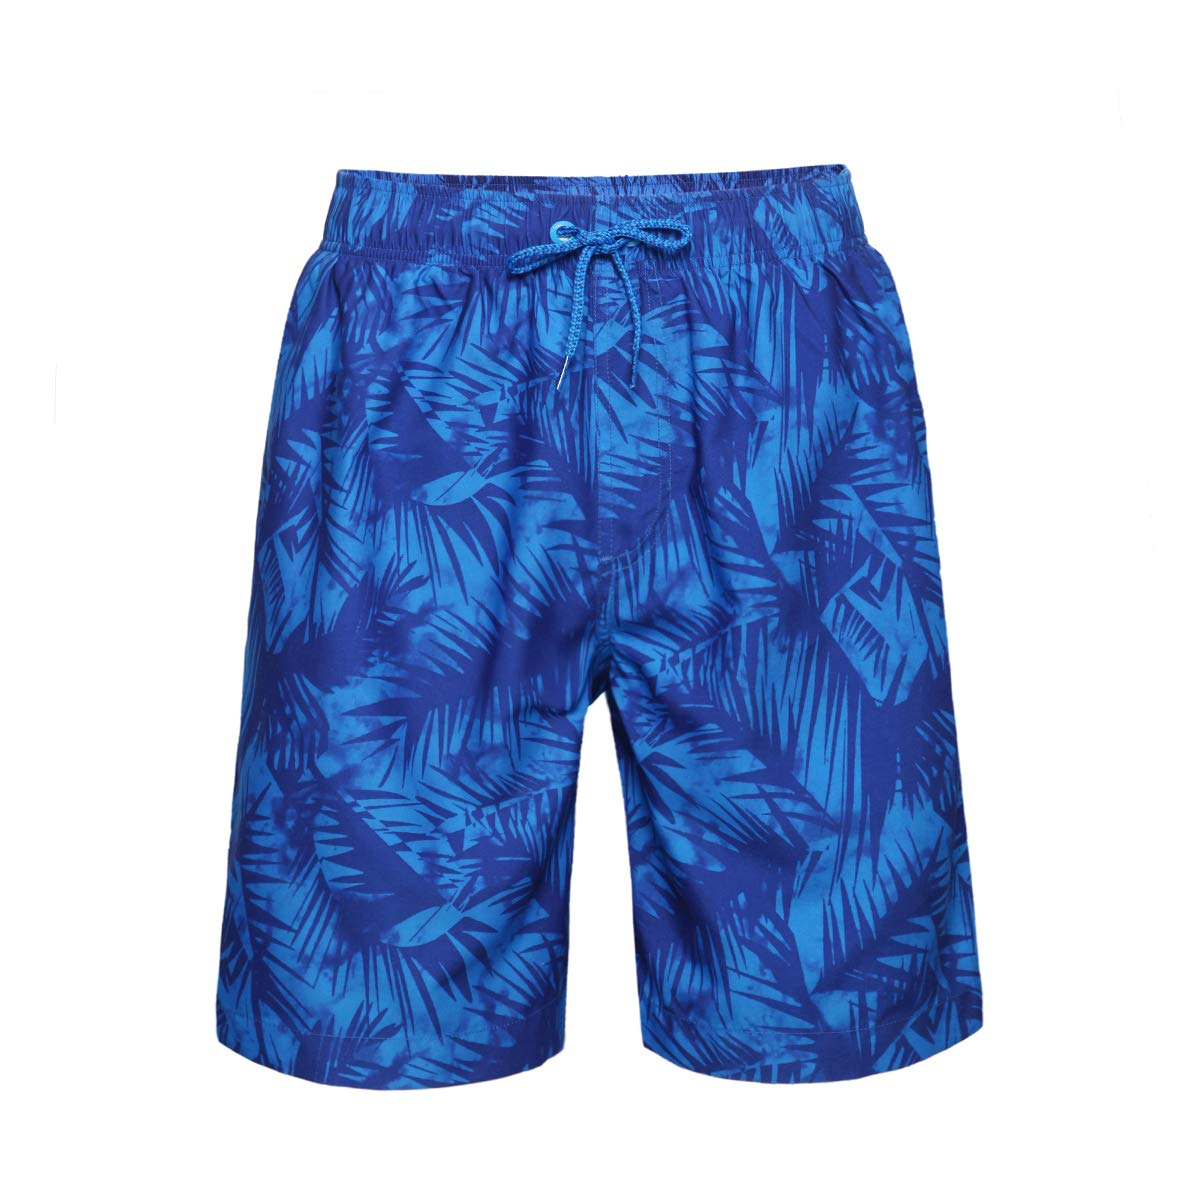 Quick Dry Drawstring Blue Boardshorts